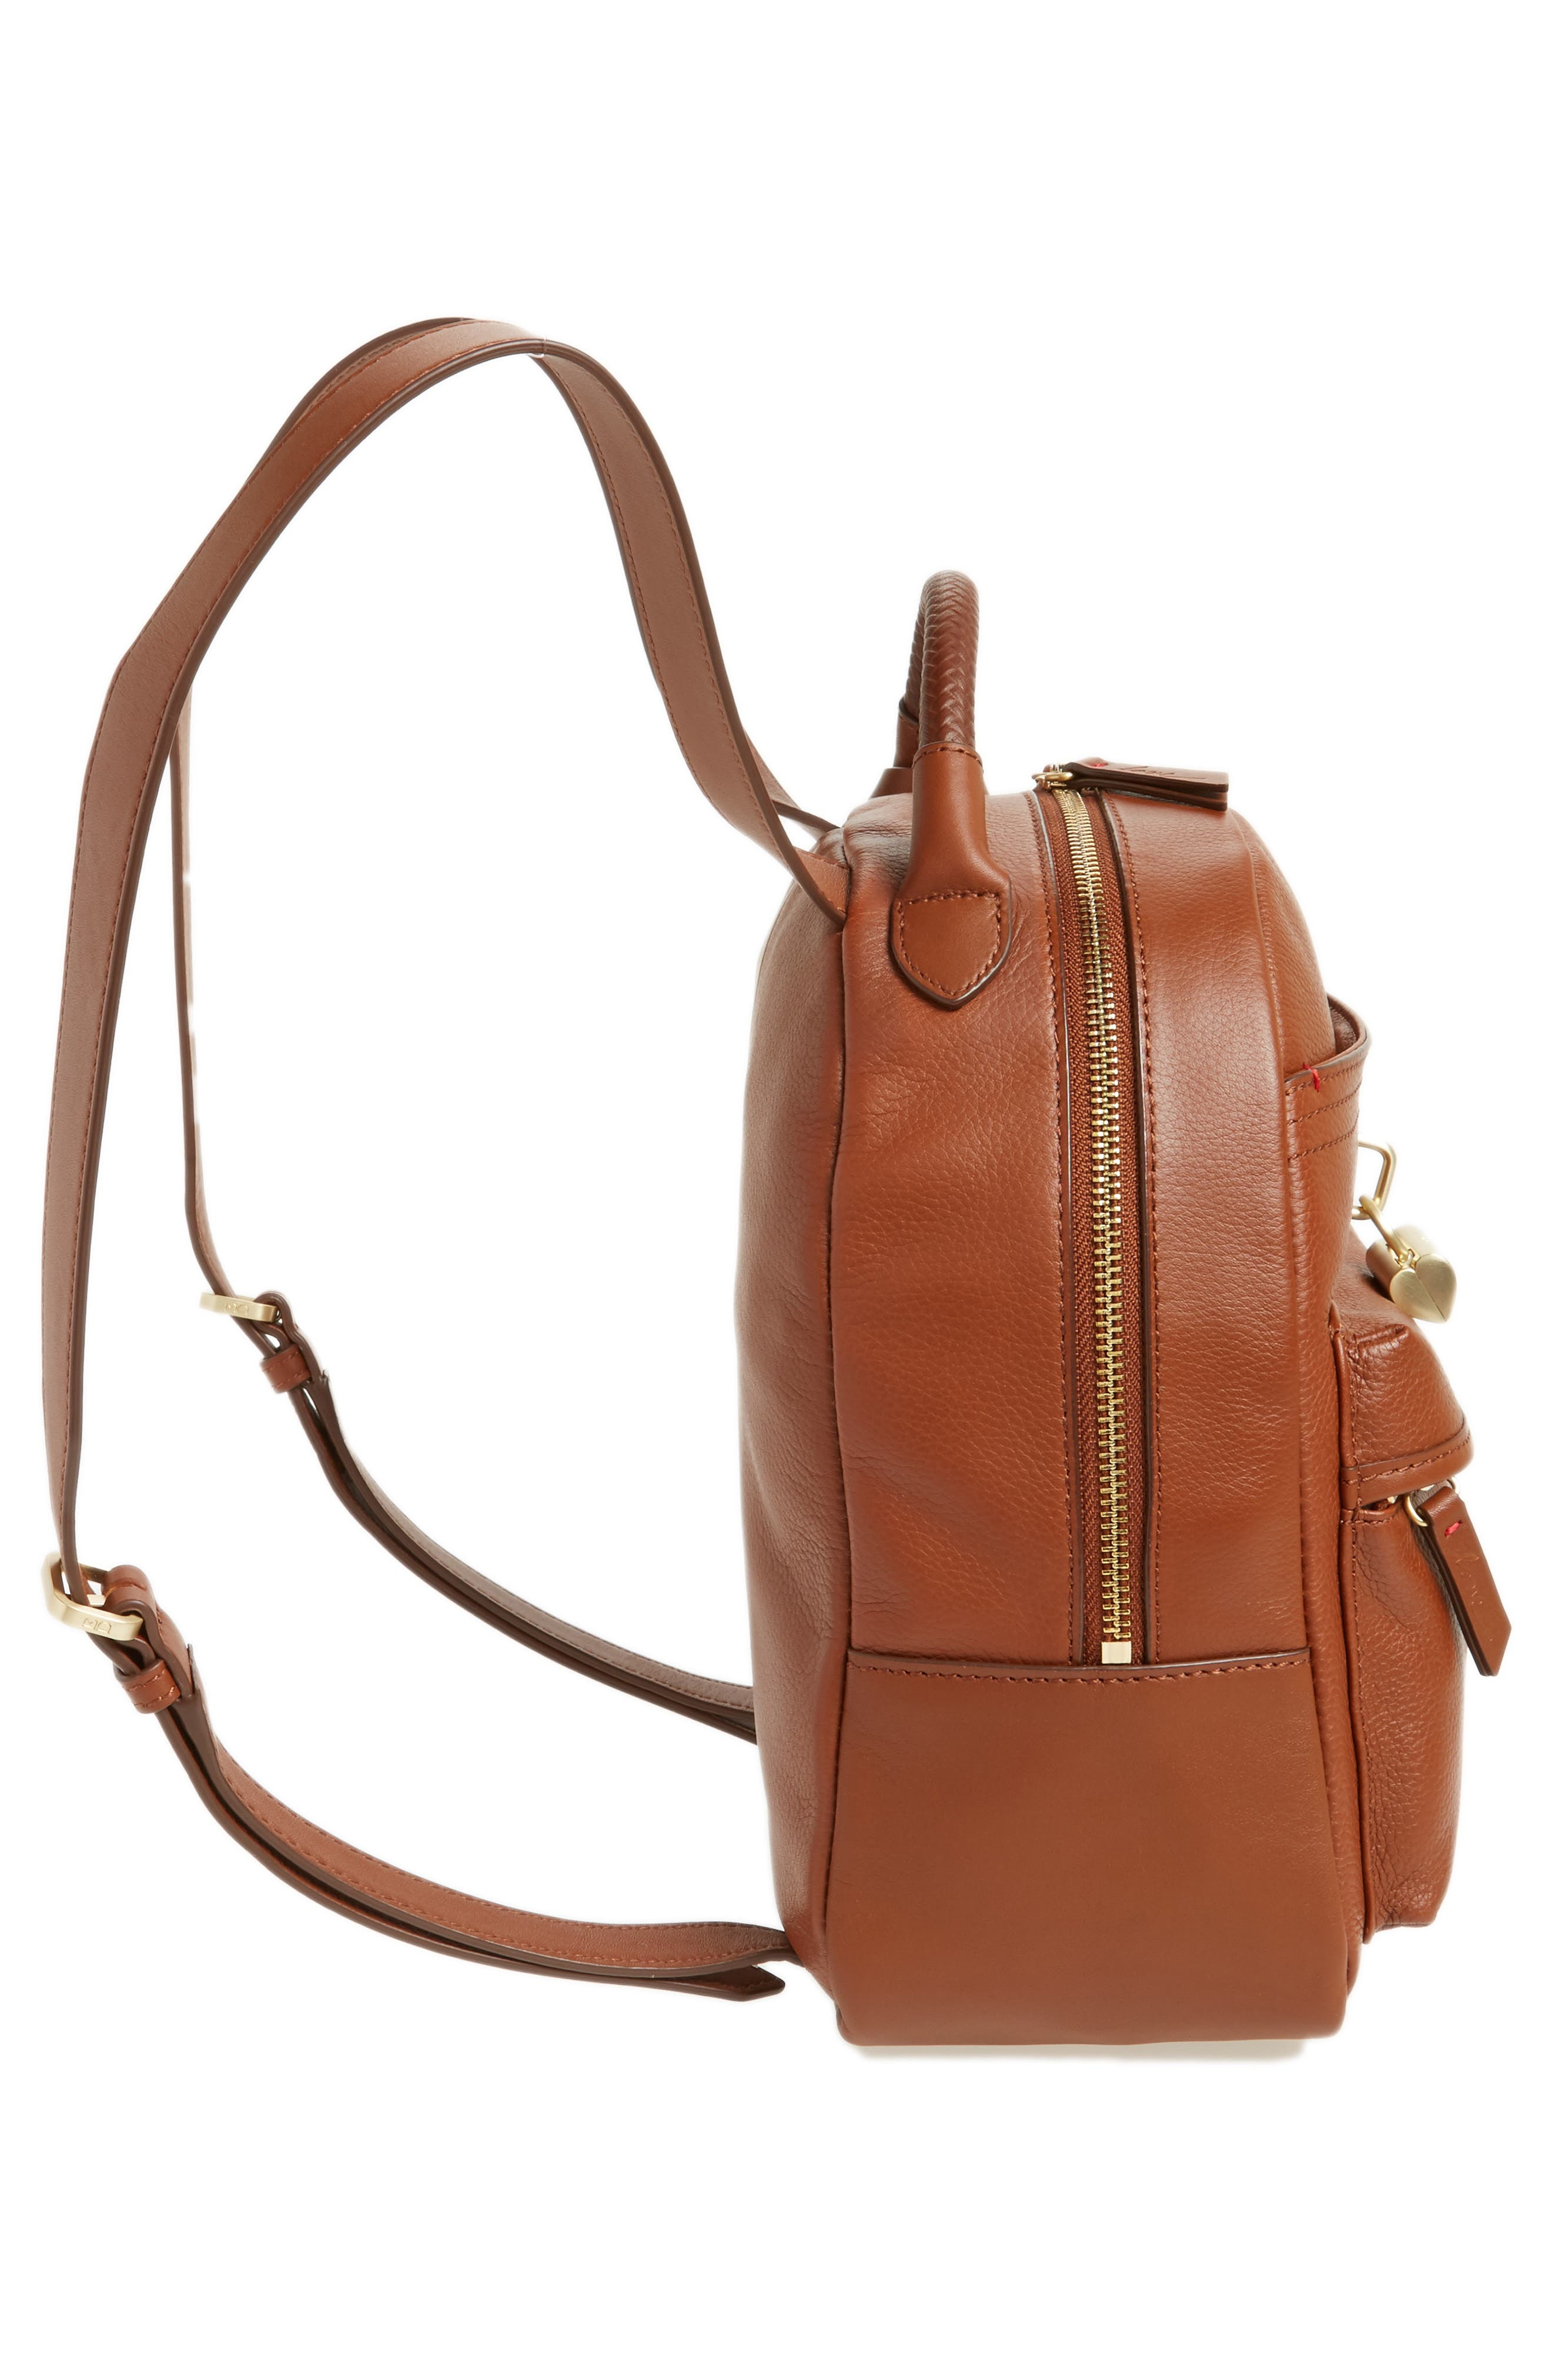 Brody Leather Backpack,                             Alternate thumbnail 5, color,                             242